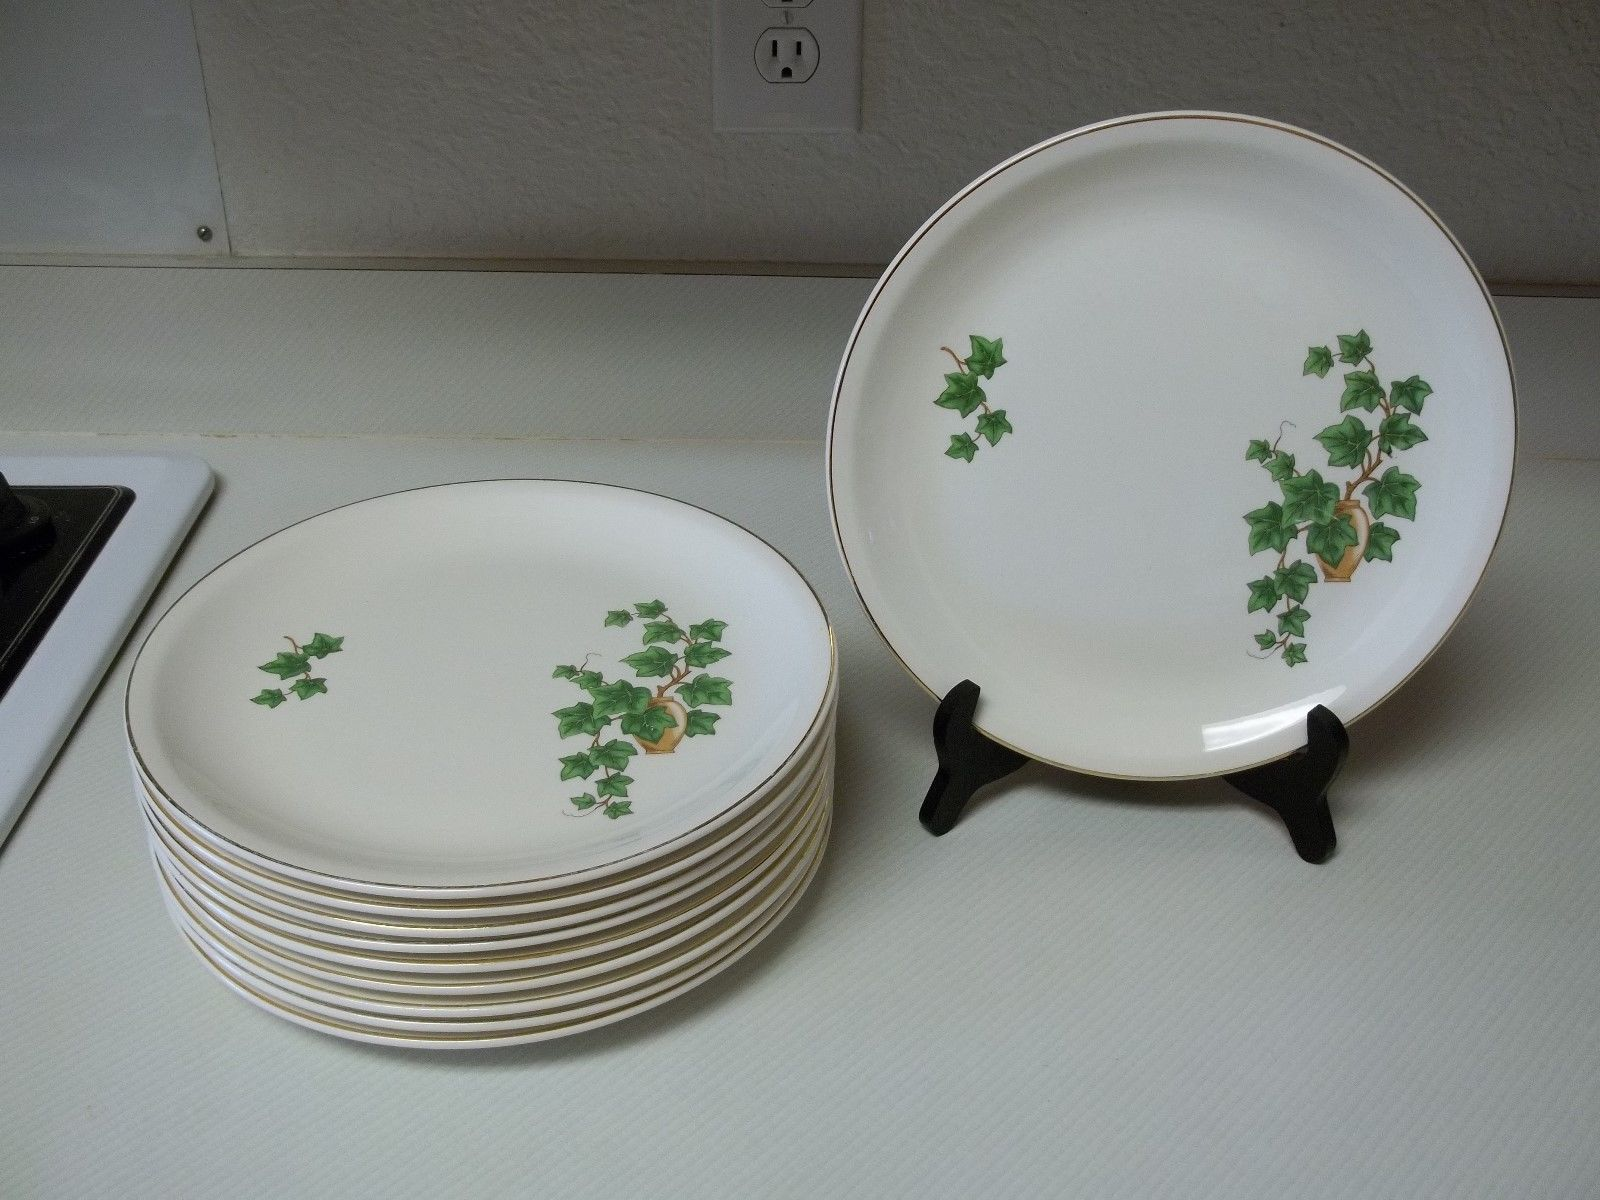 S l1600 & Paden City Pottery USA Set of 10 Dinner and 17 similar items